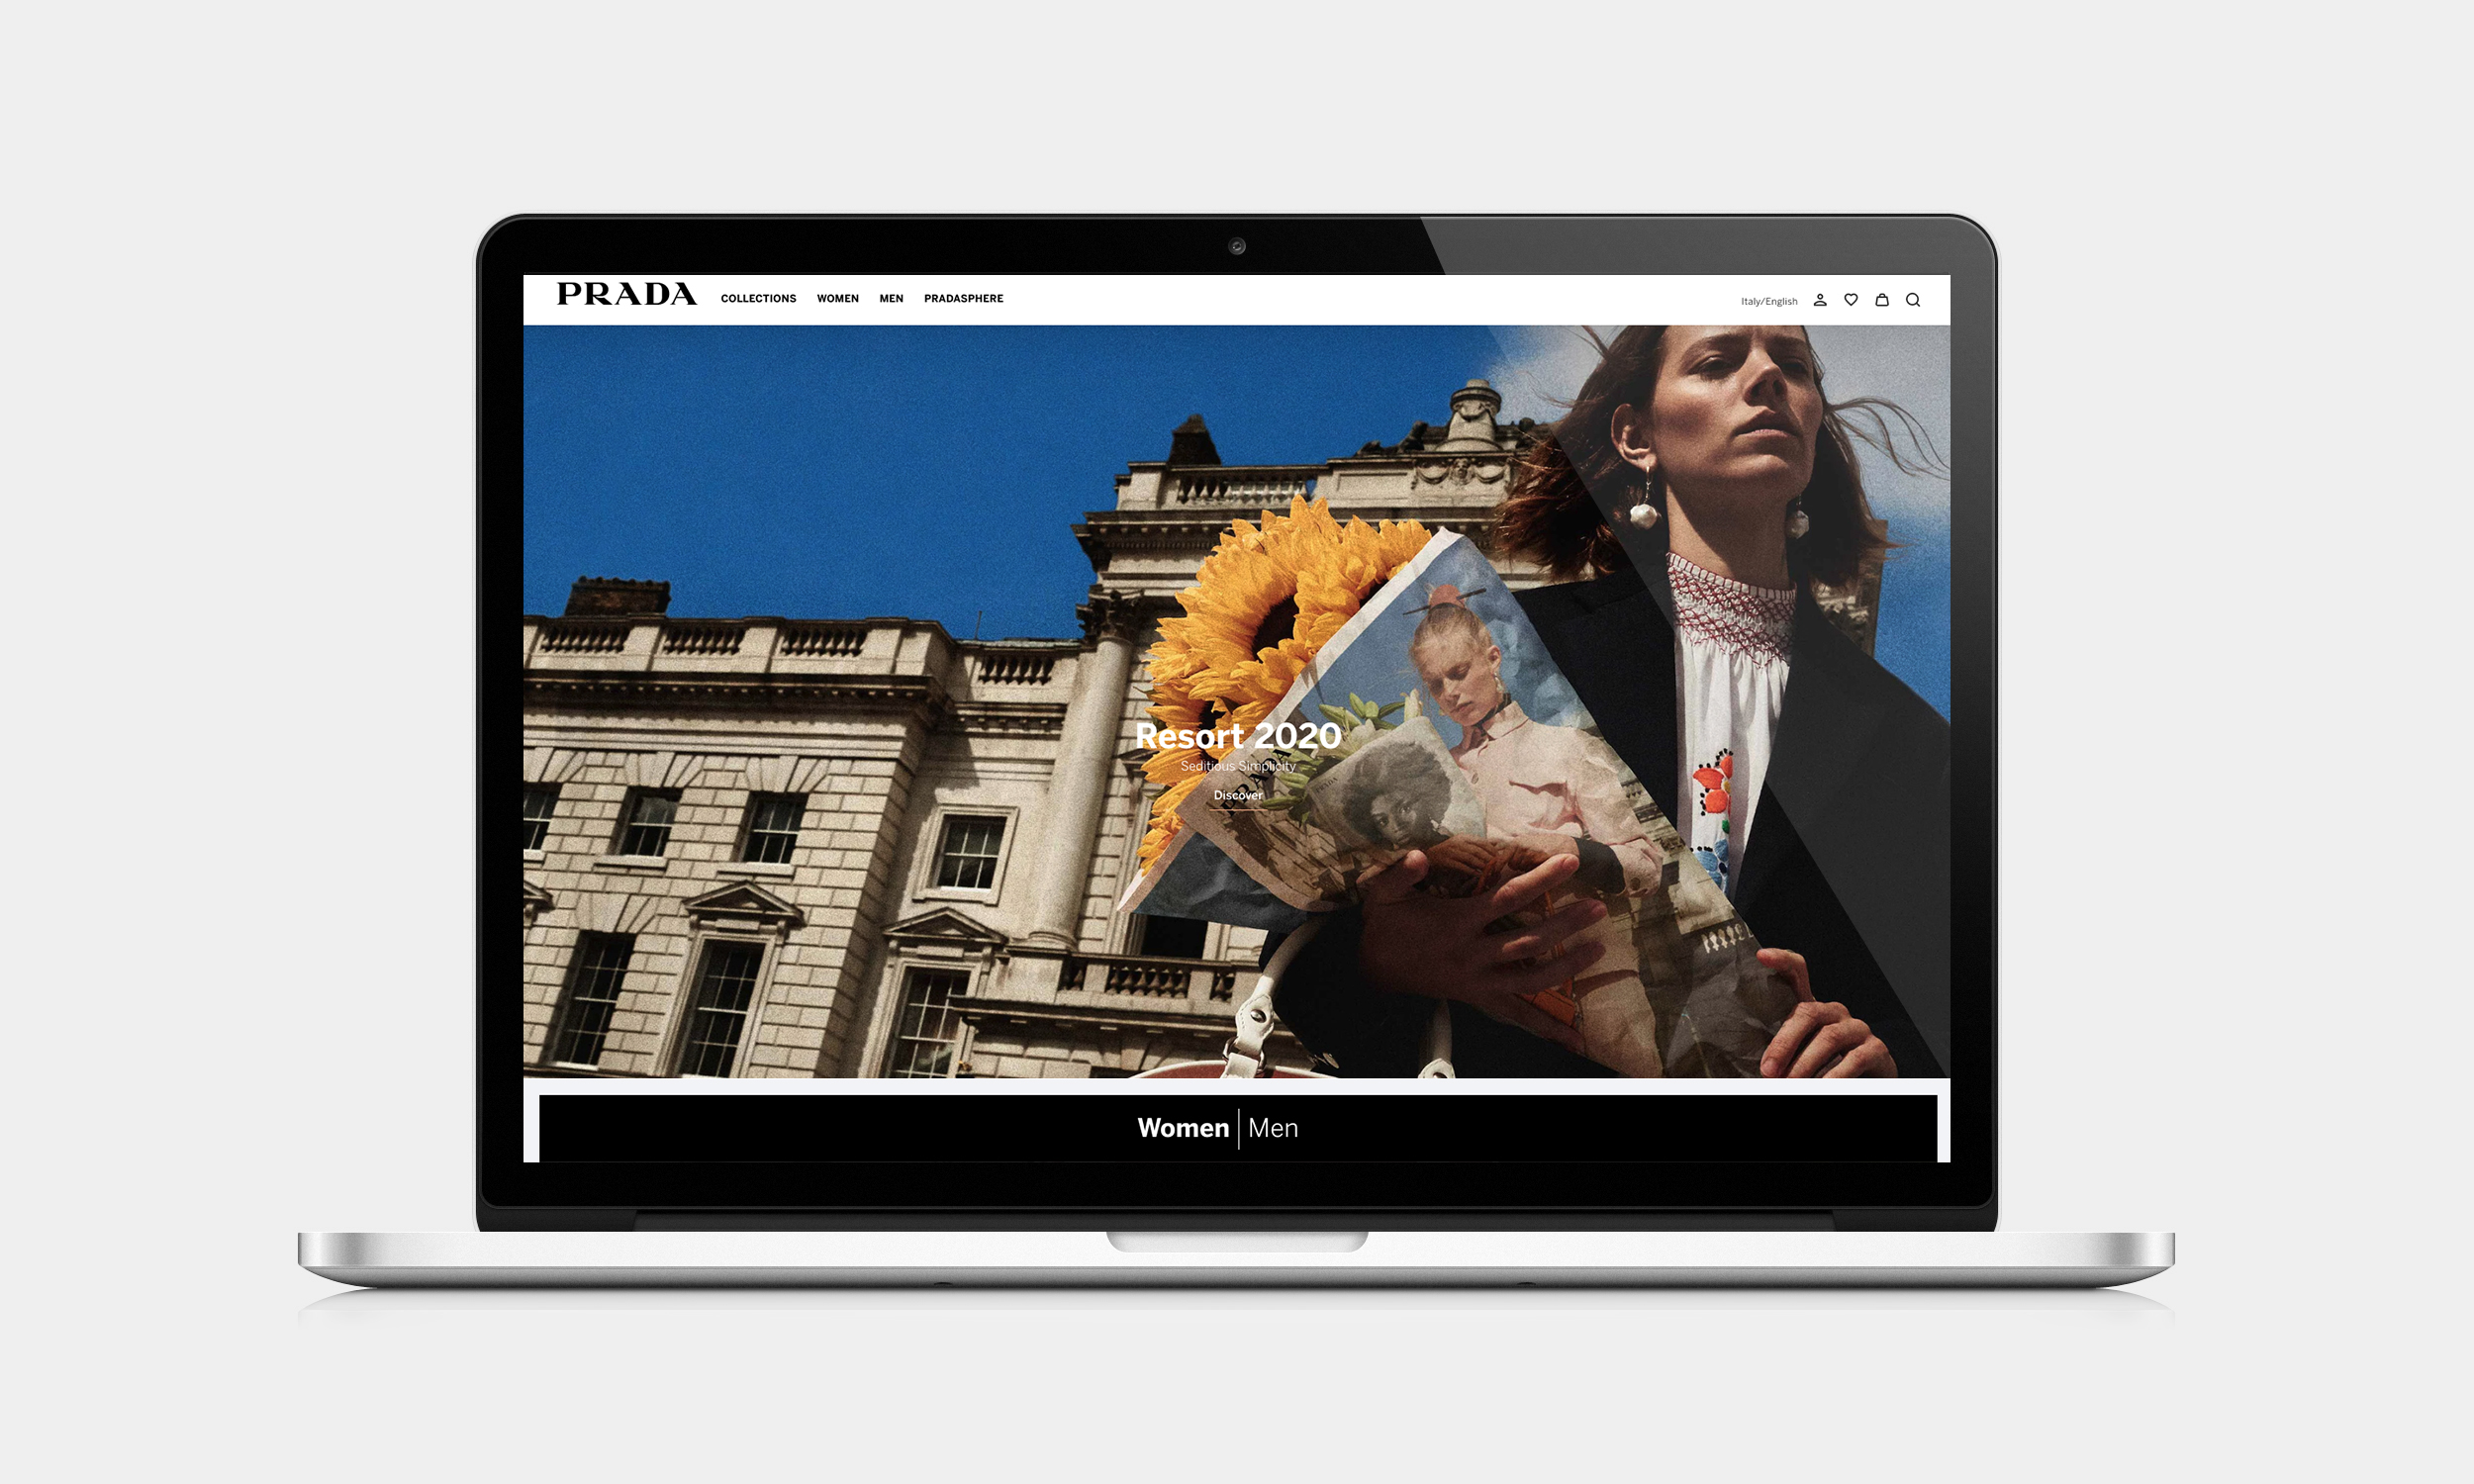 Prada's revamped Web site.